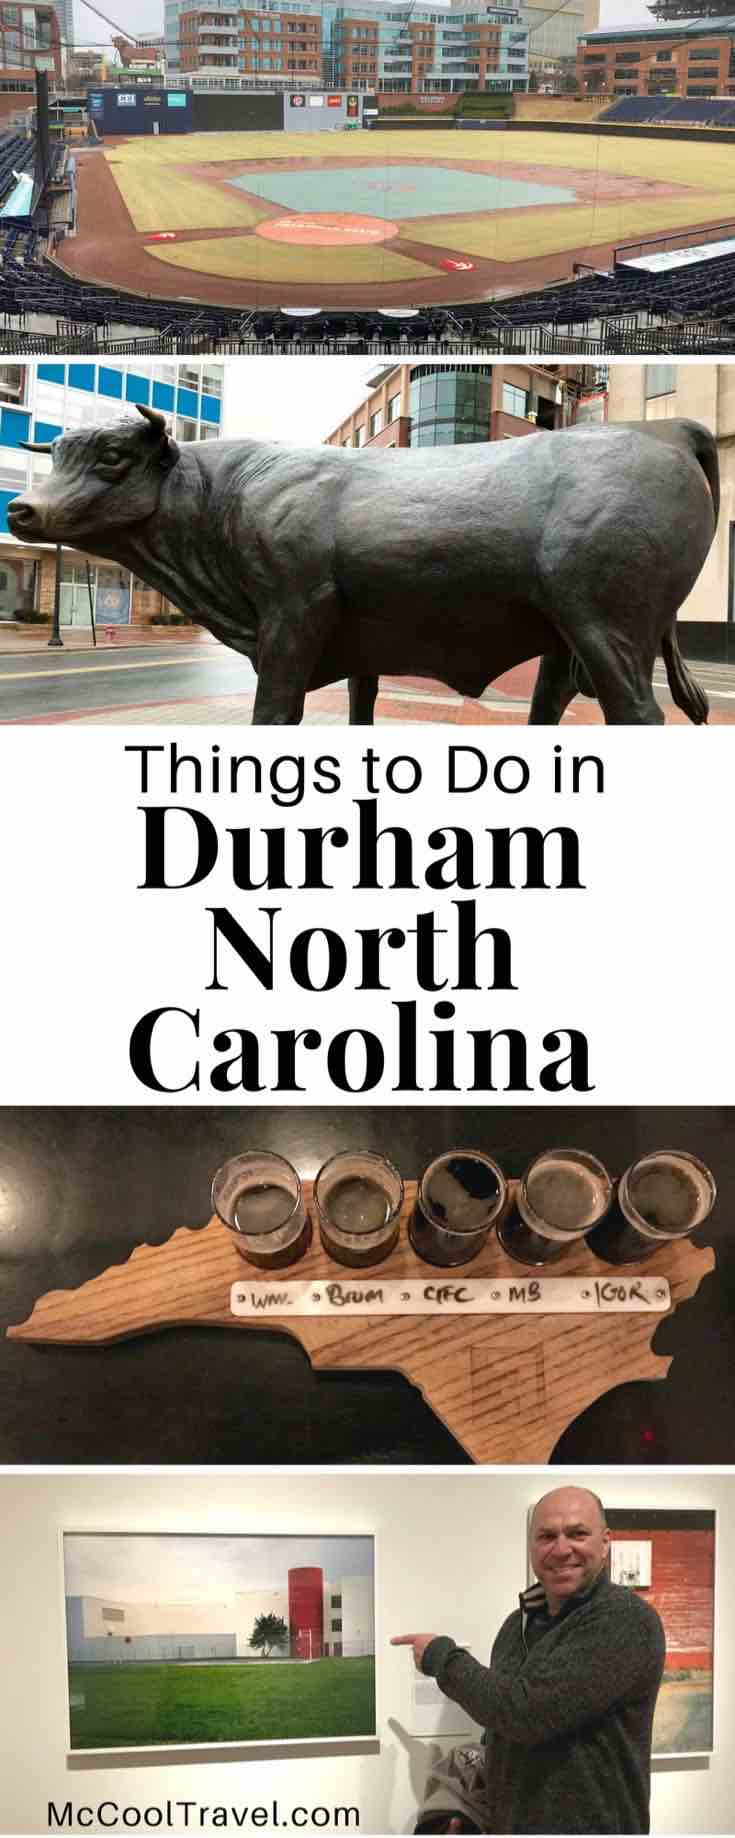 Durham North Carolina USA. Things to do in Durham NC include a vibrant scene of arts, local cuisine and craft beverages, historic preservation and recognition.